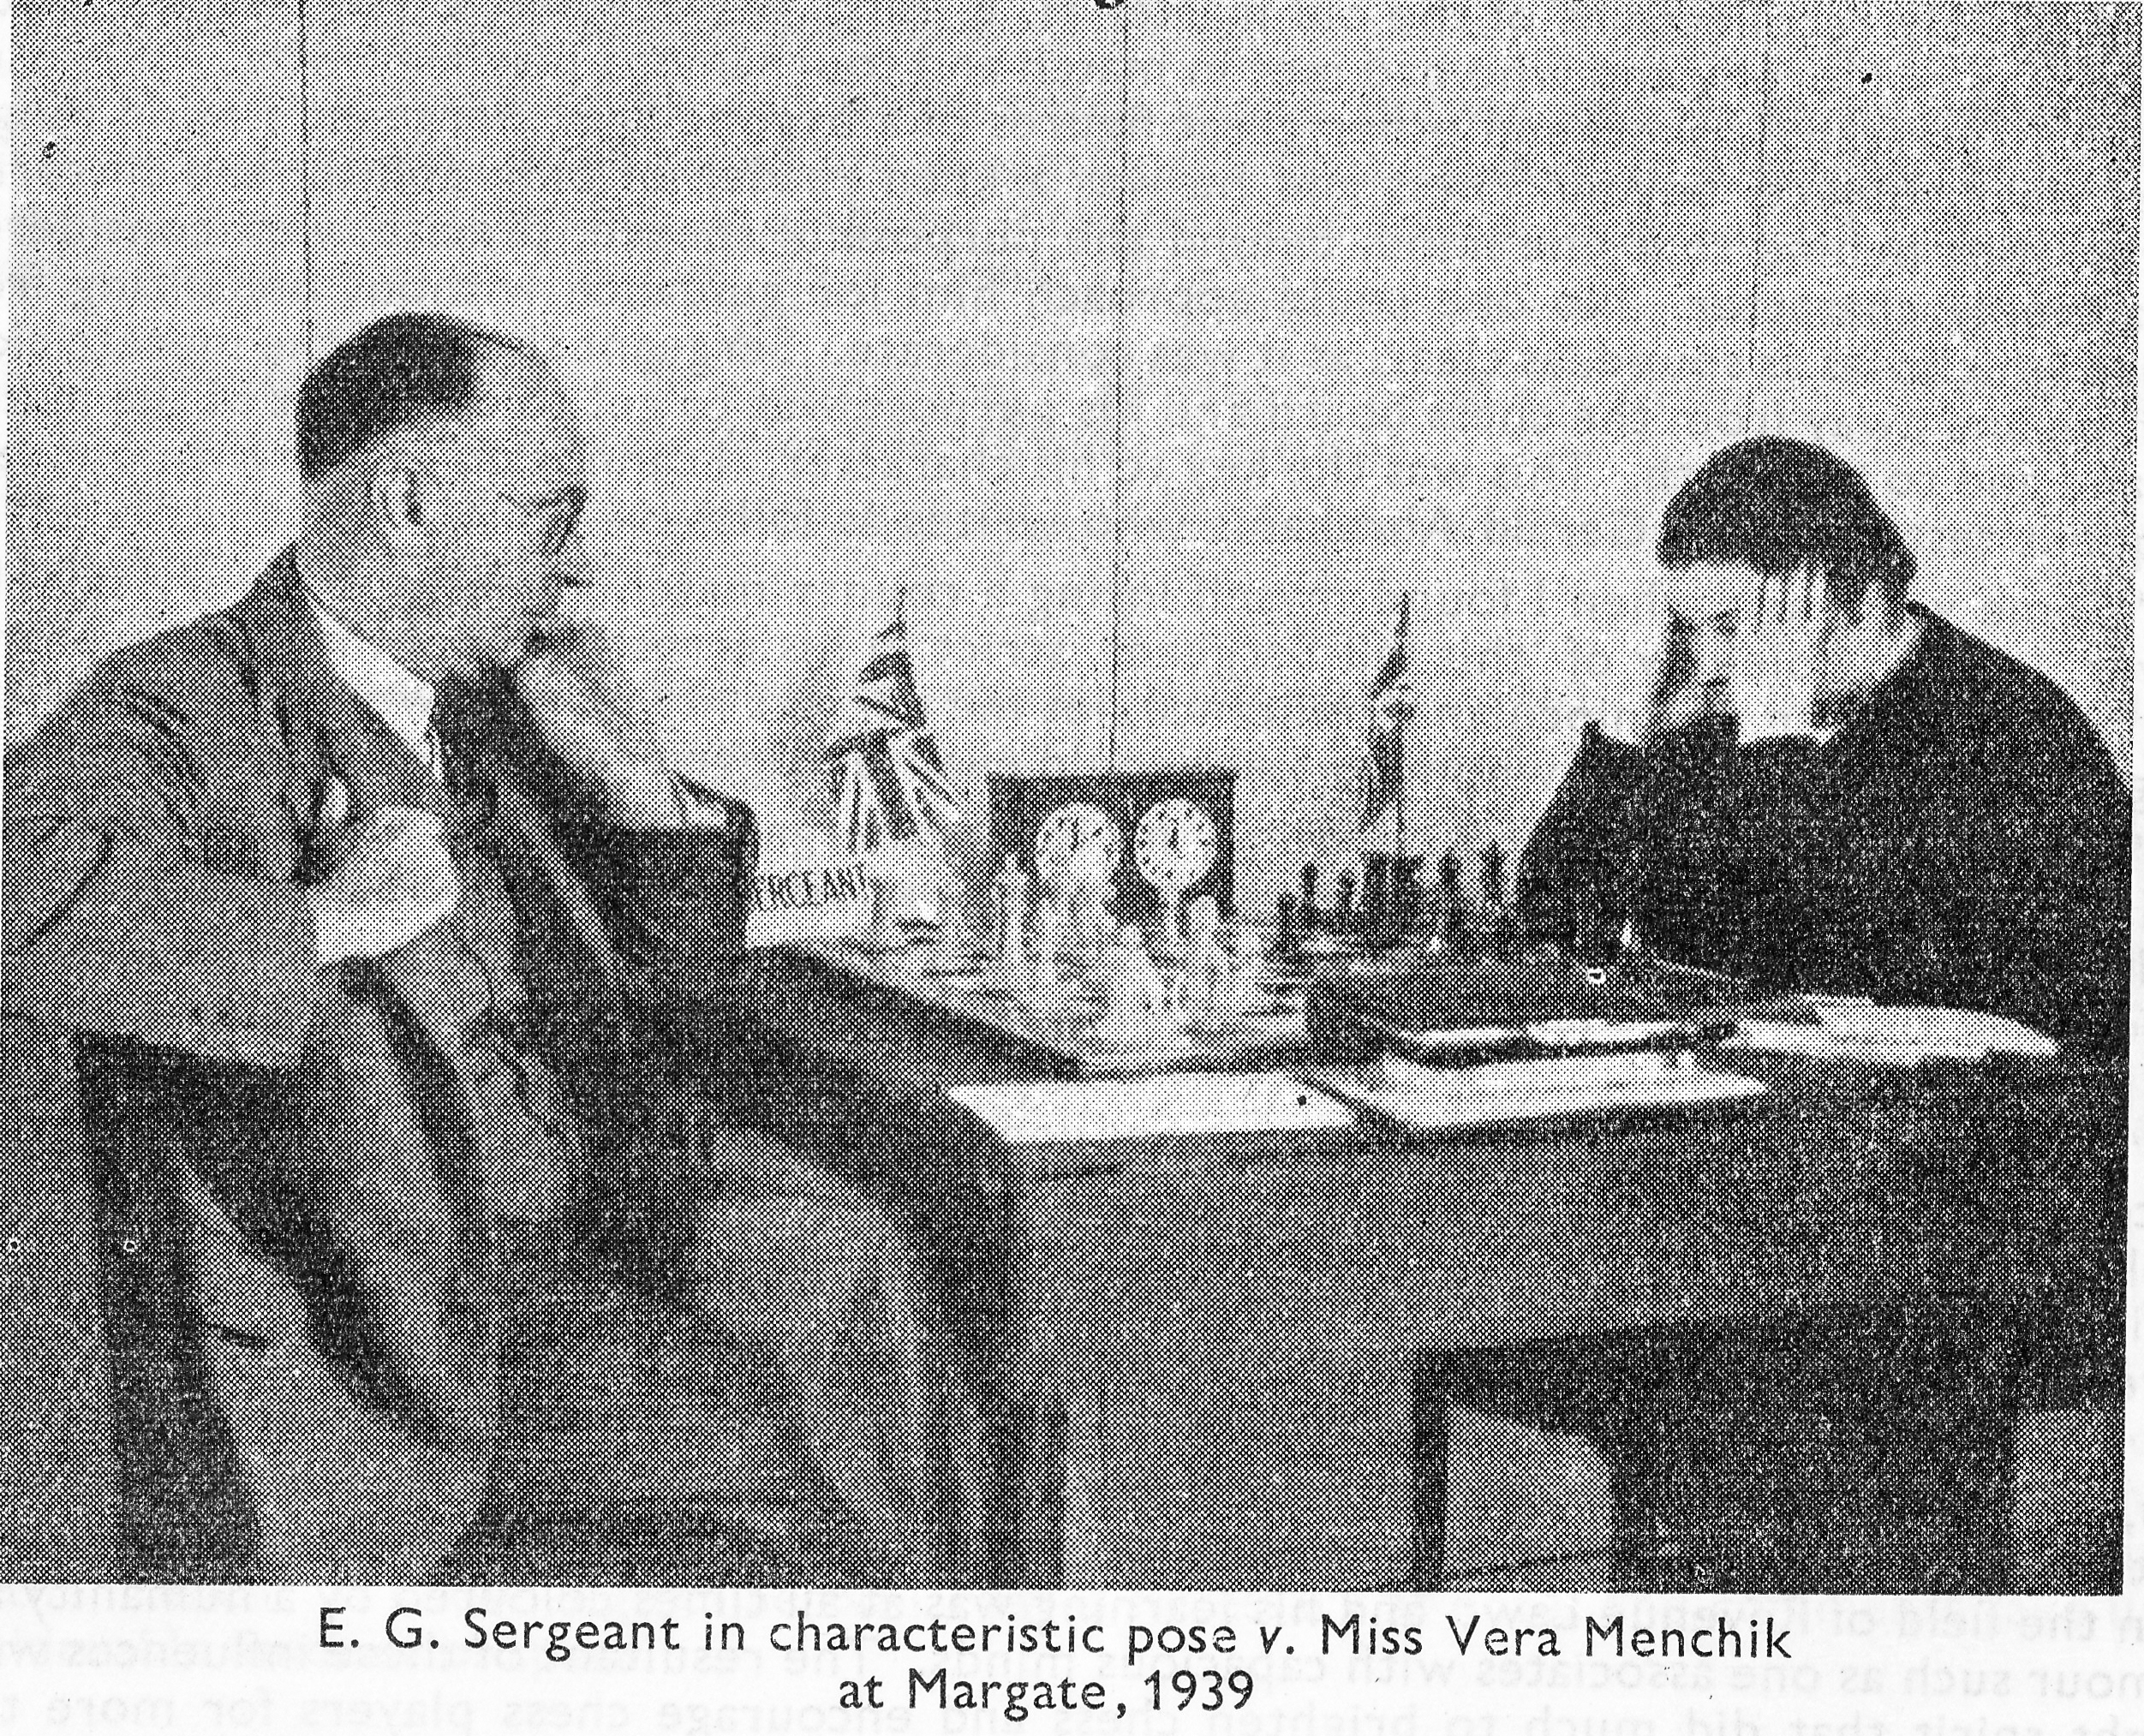 E.G. Sergeant in characteristic pose v. Miss Vera Menchik at Margate, 1939